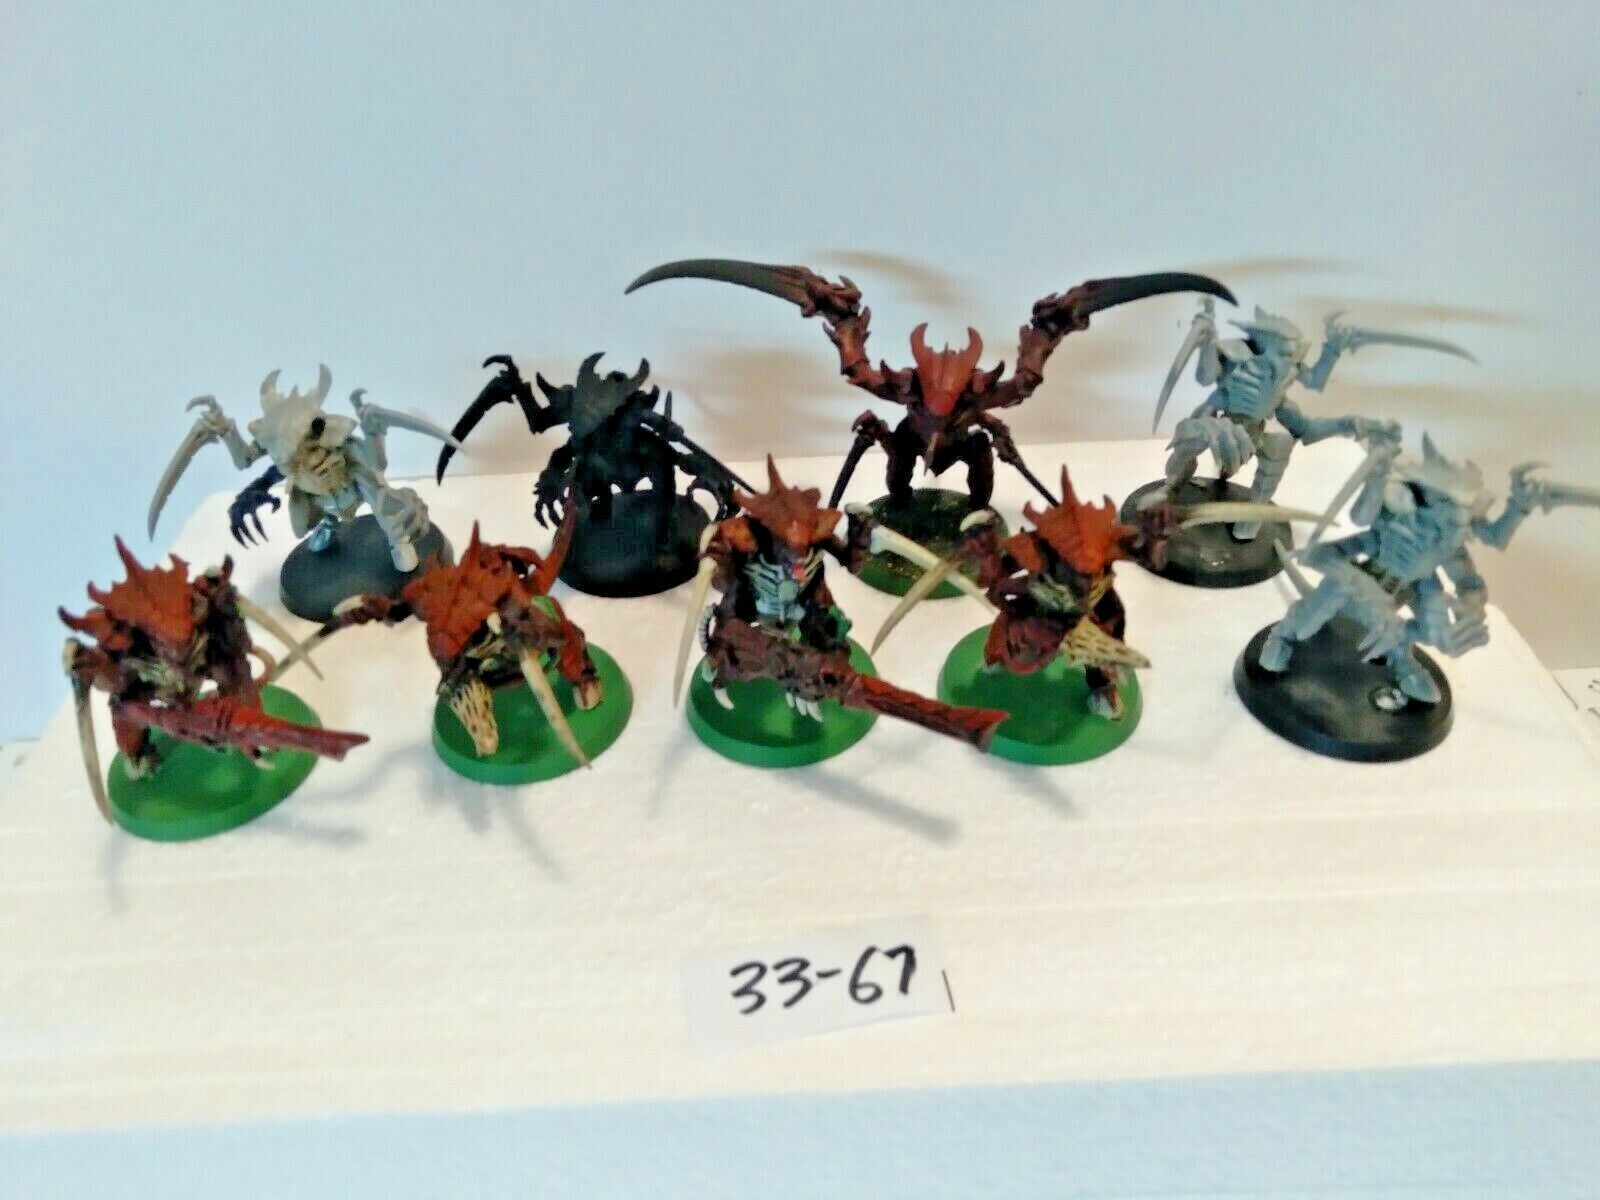 L33-67 Warhammer 40k Tyranid Warriors 9 Some Paint - $70.00